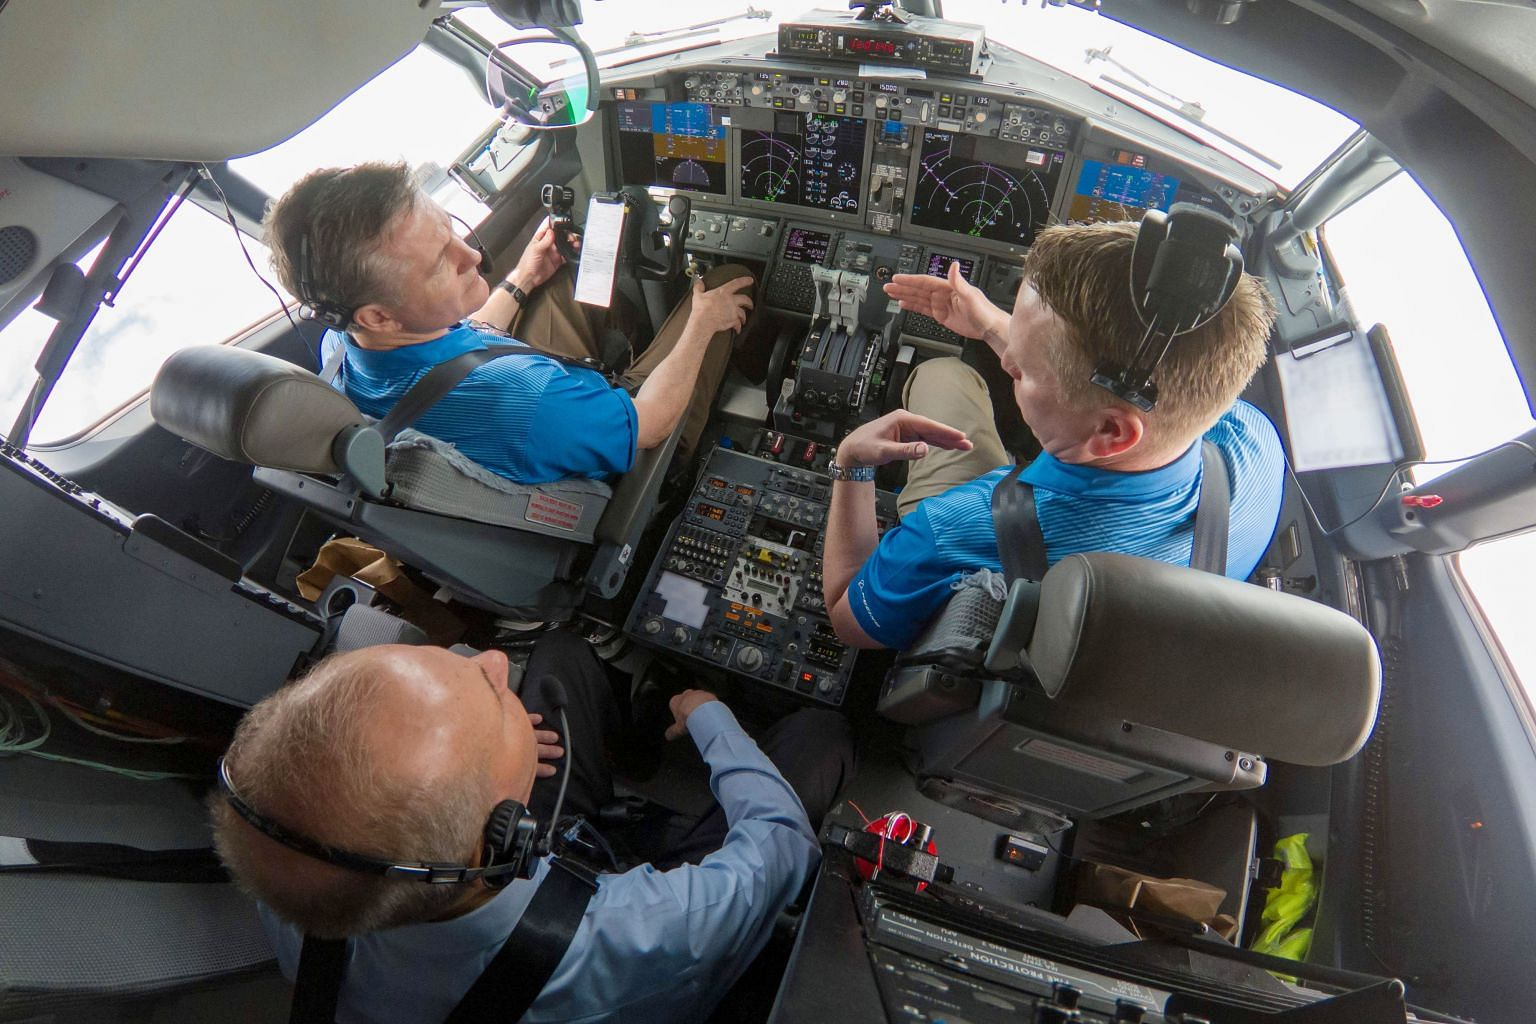 Boeing chief executive Dennis Muilenburg (in rear seat) with two pilots on a flight demonstration this month of the updated Manoeuvring Characteristics Augmentation System software on a 737 Max 7 aircraft. Two recent fatal crashes of the Boeing 737 M